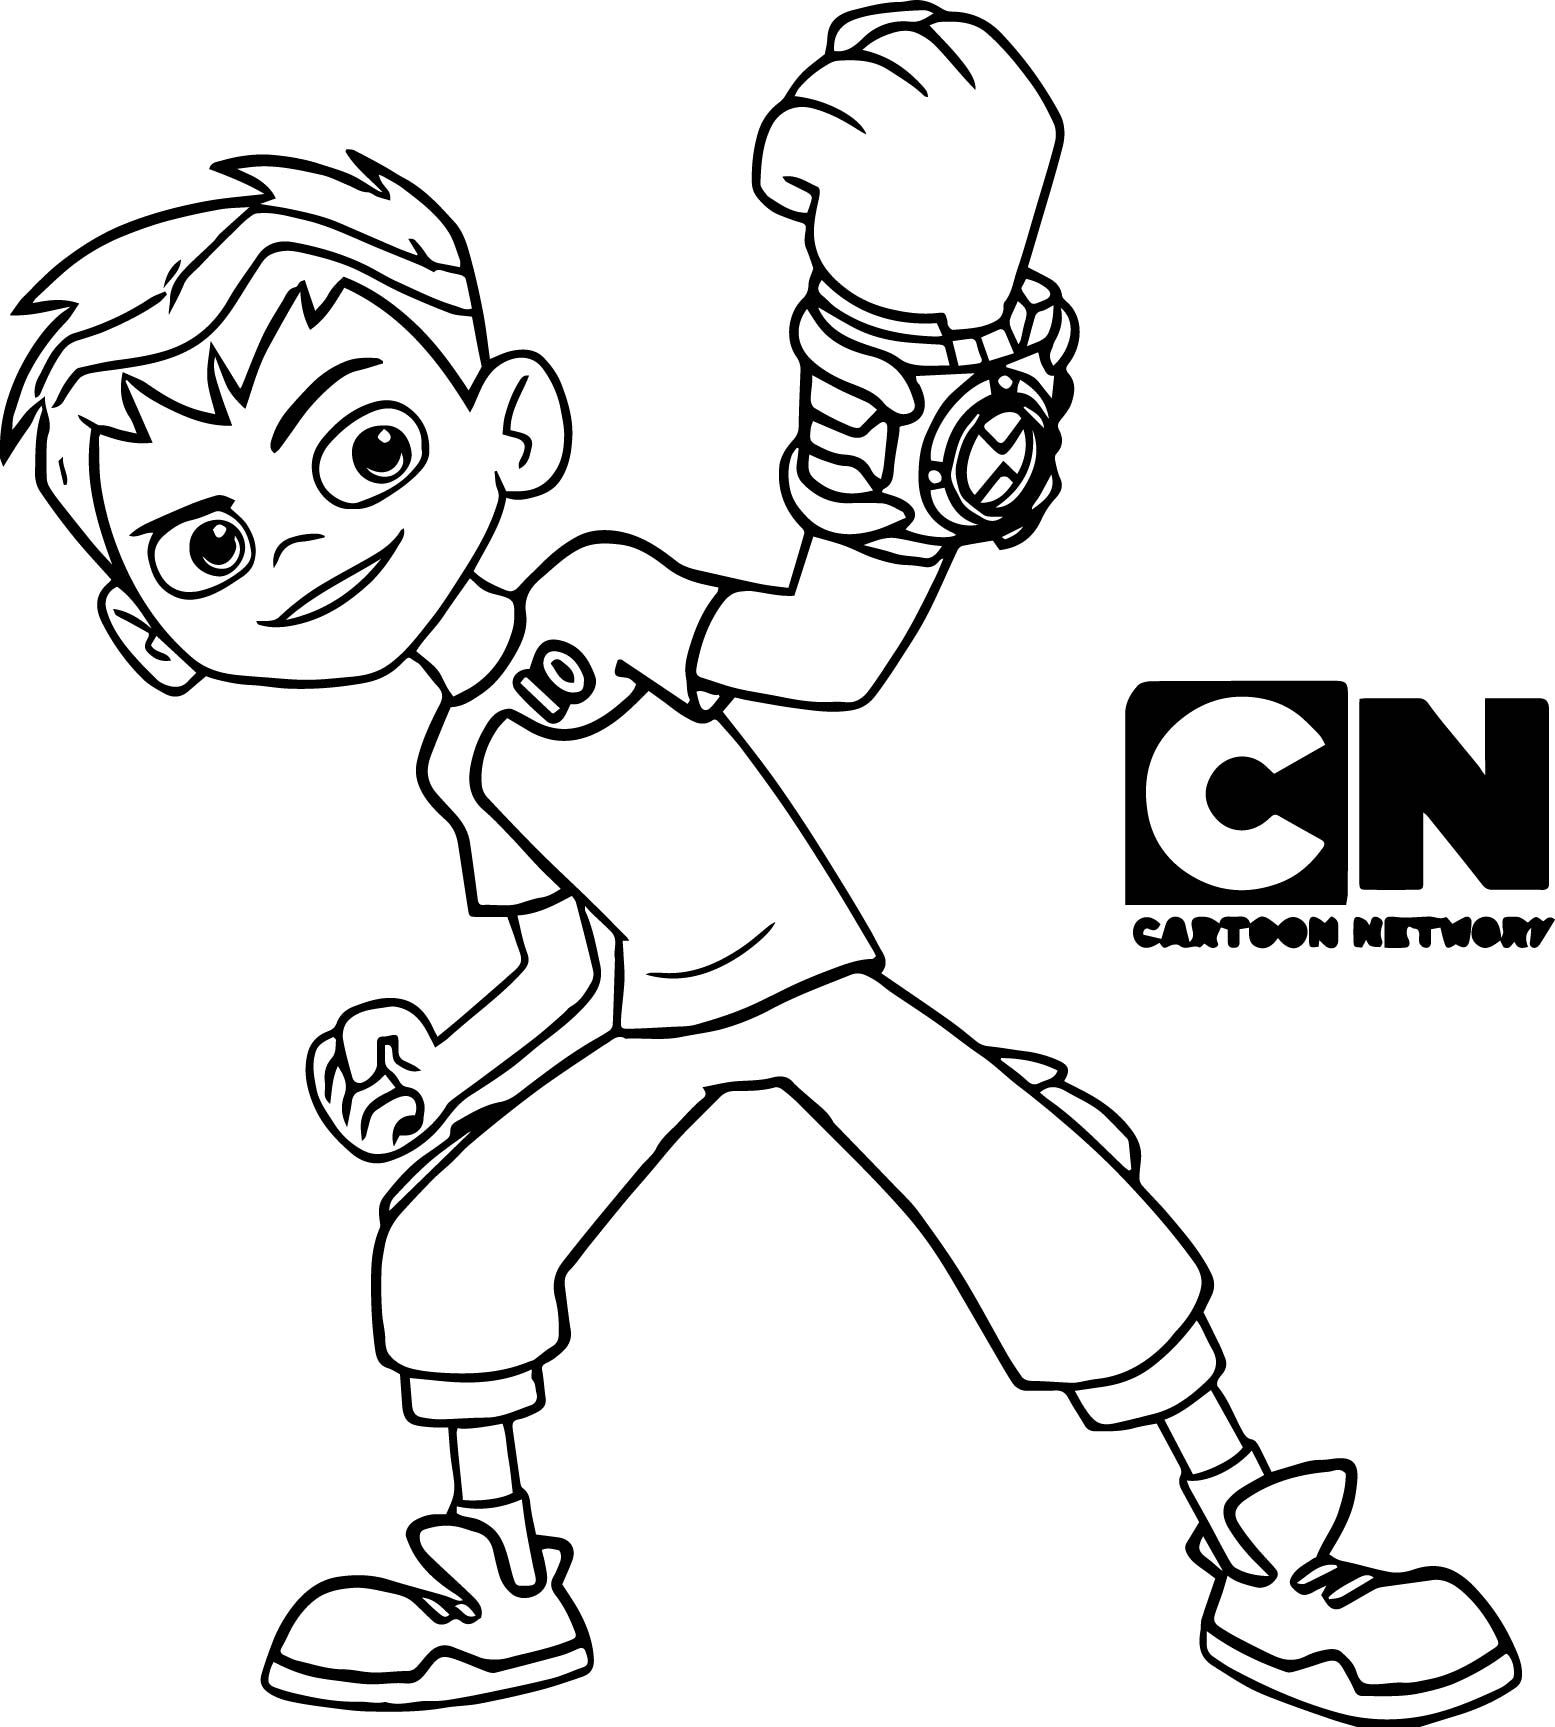 - Awesome Ben 10 Power Coloring Page (With Images) Lego Coloring